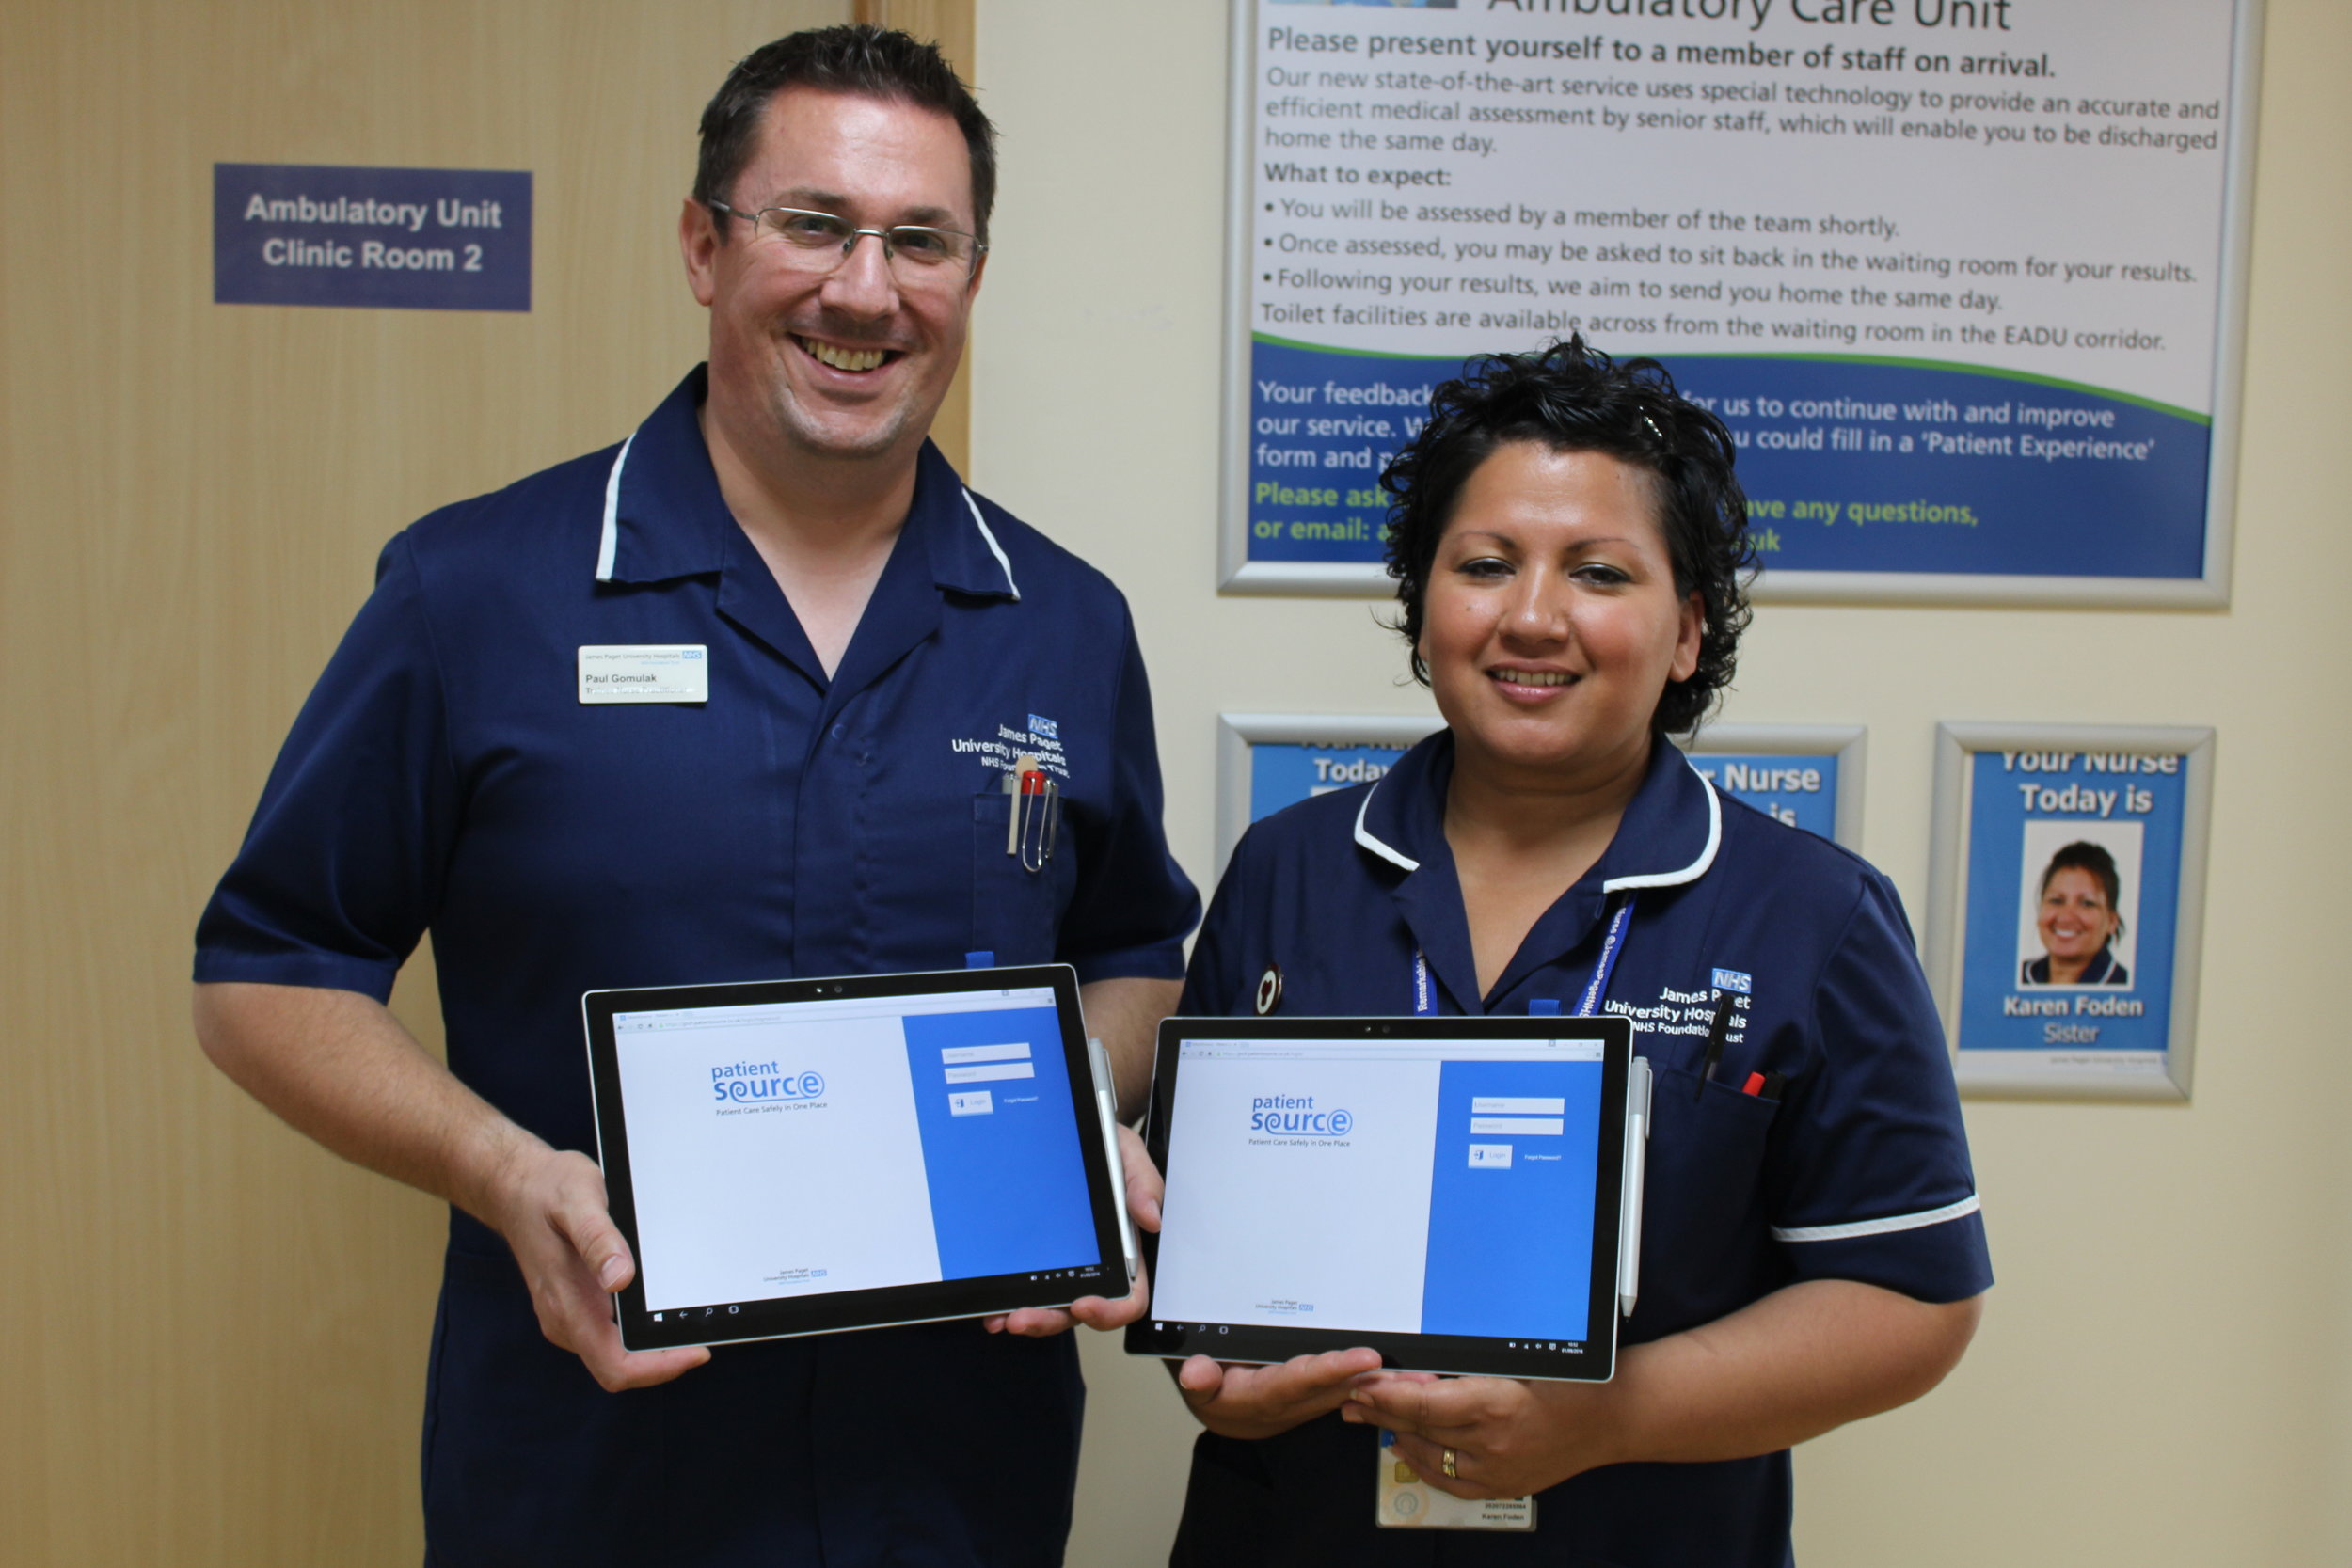 Nurse Practitioners Paul Gomulak and Karen Foden holding the Microsoft Surface 4 Pro tablets which have been loaned to JPUH Ambulatory Care by Microsoft for PatientSource's trial (Photography by Laura Crisp)